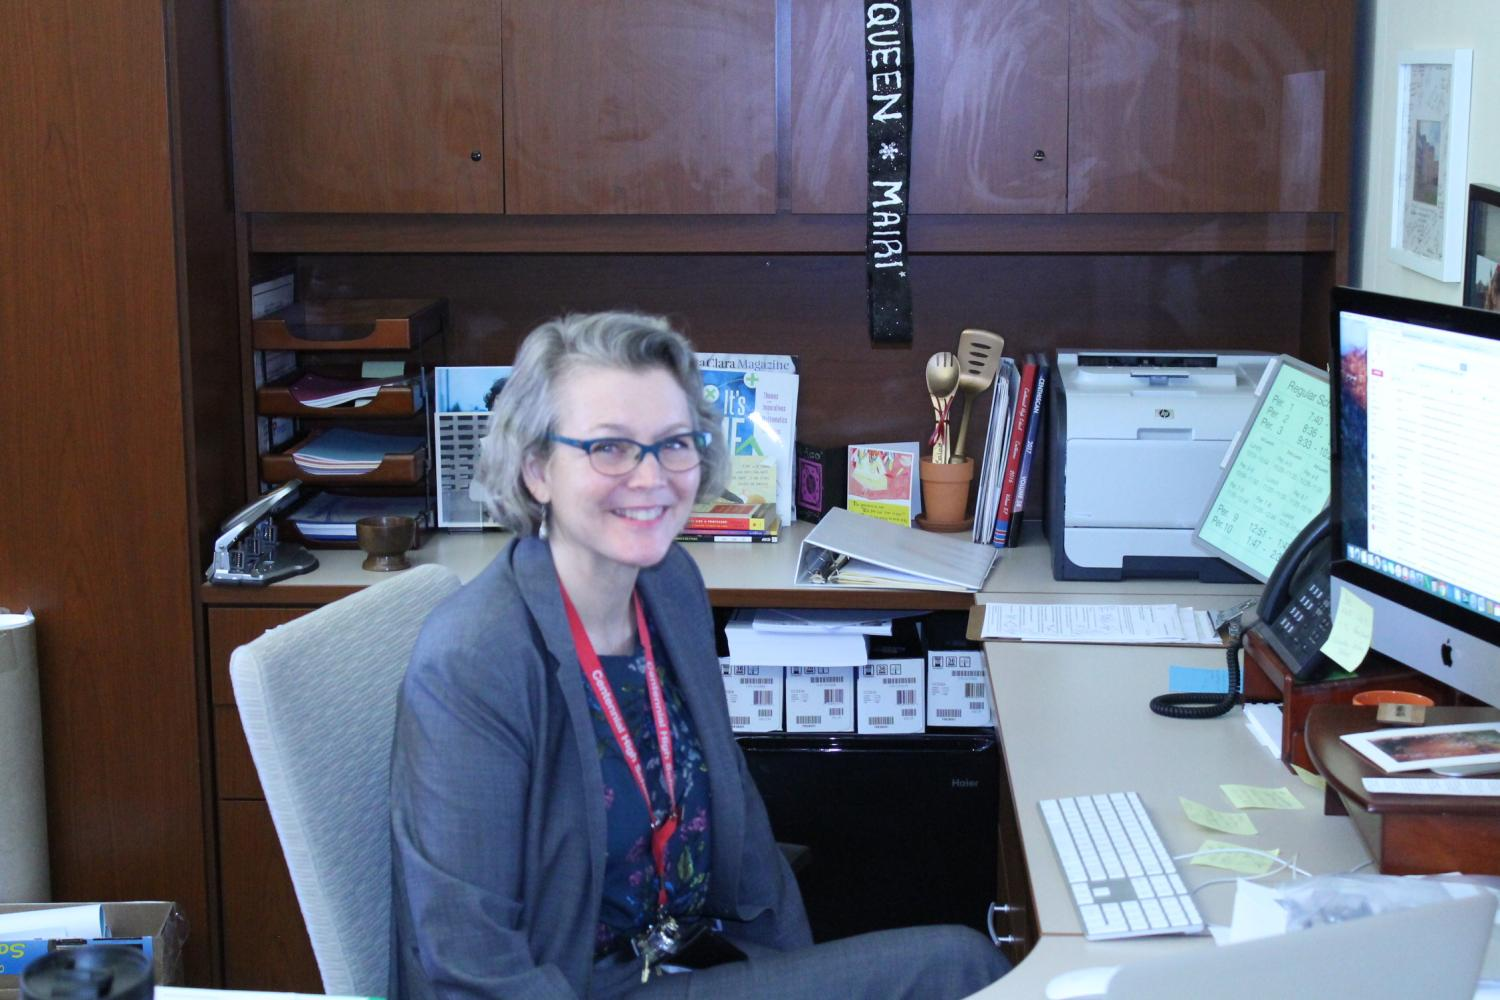 Principal Discusses Online Learning